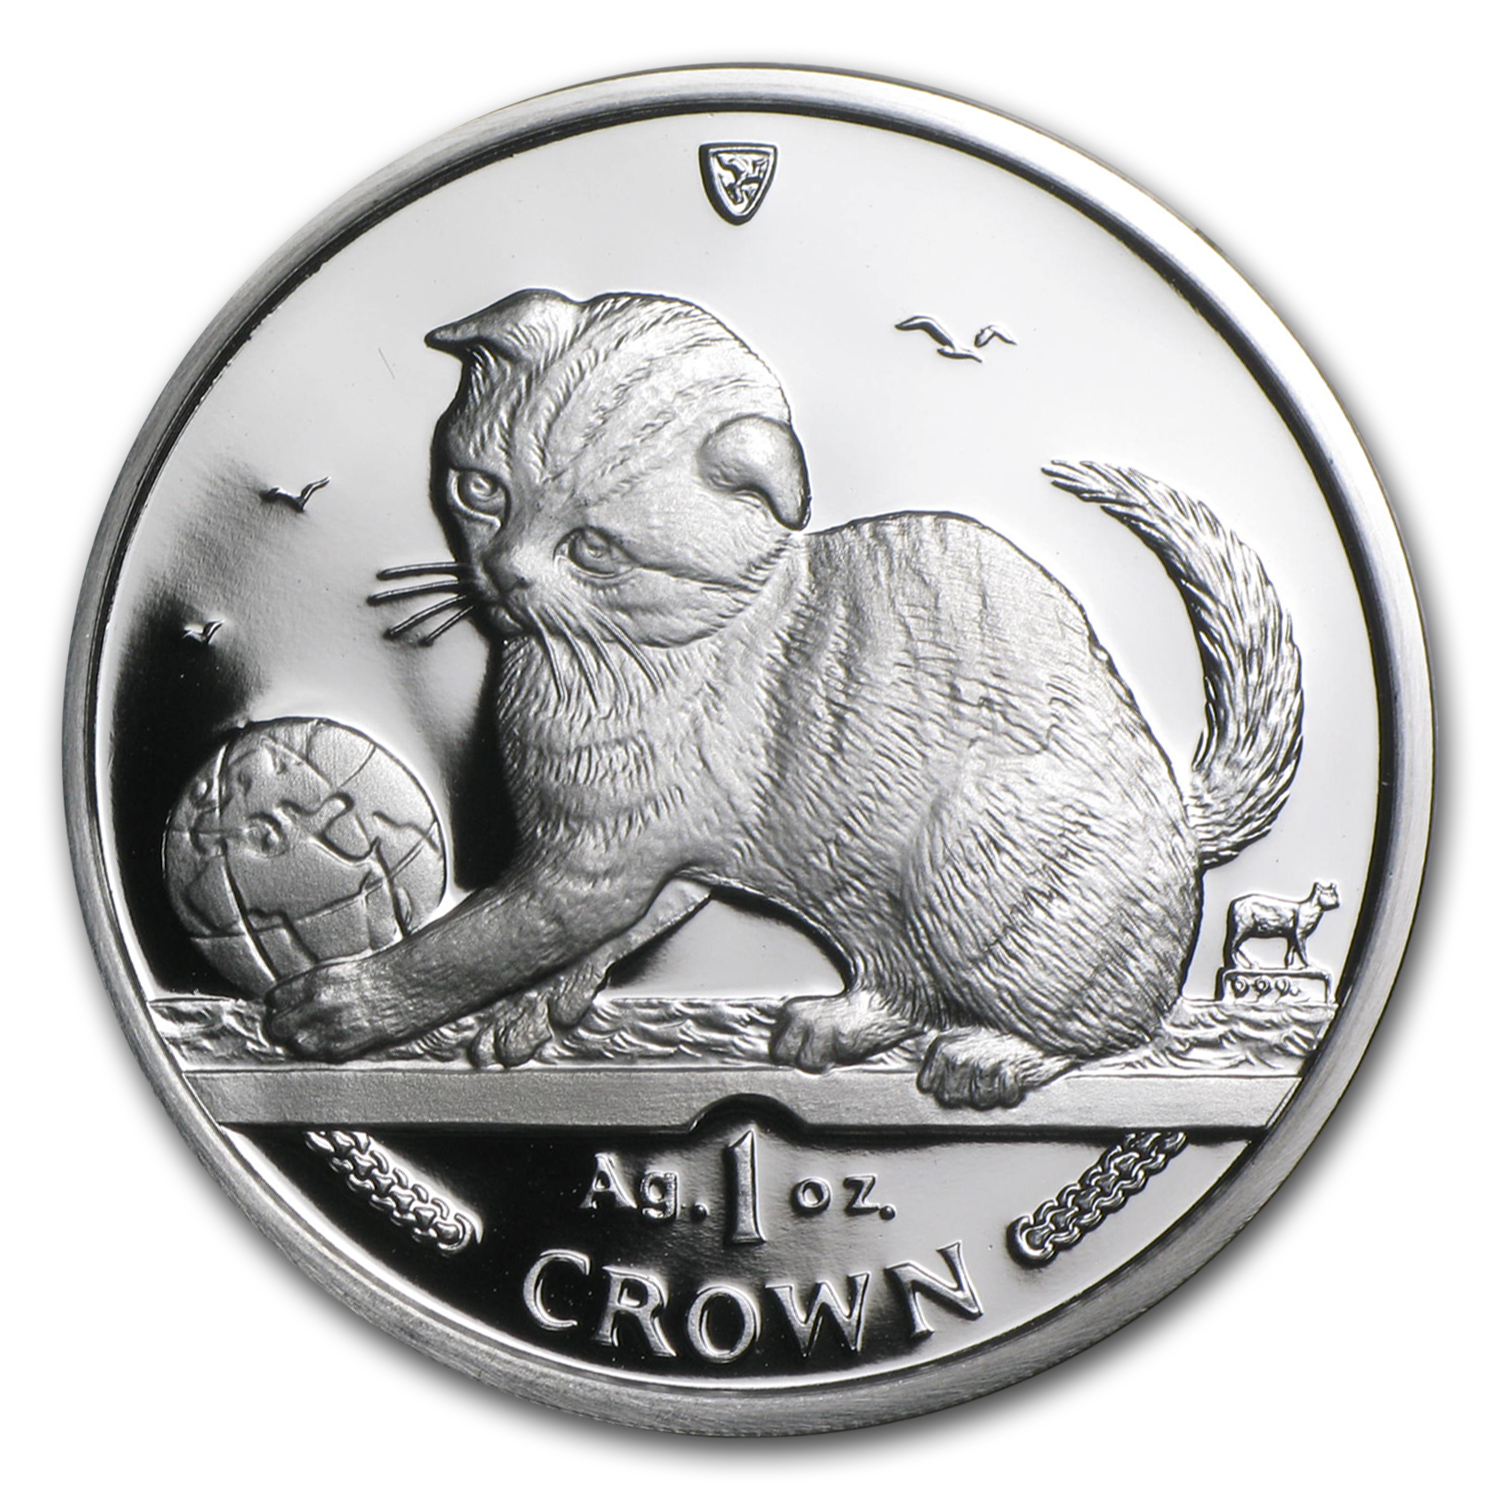 2000 Isle of Man Silver 1 Crown Scottish Fold Cat Proof